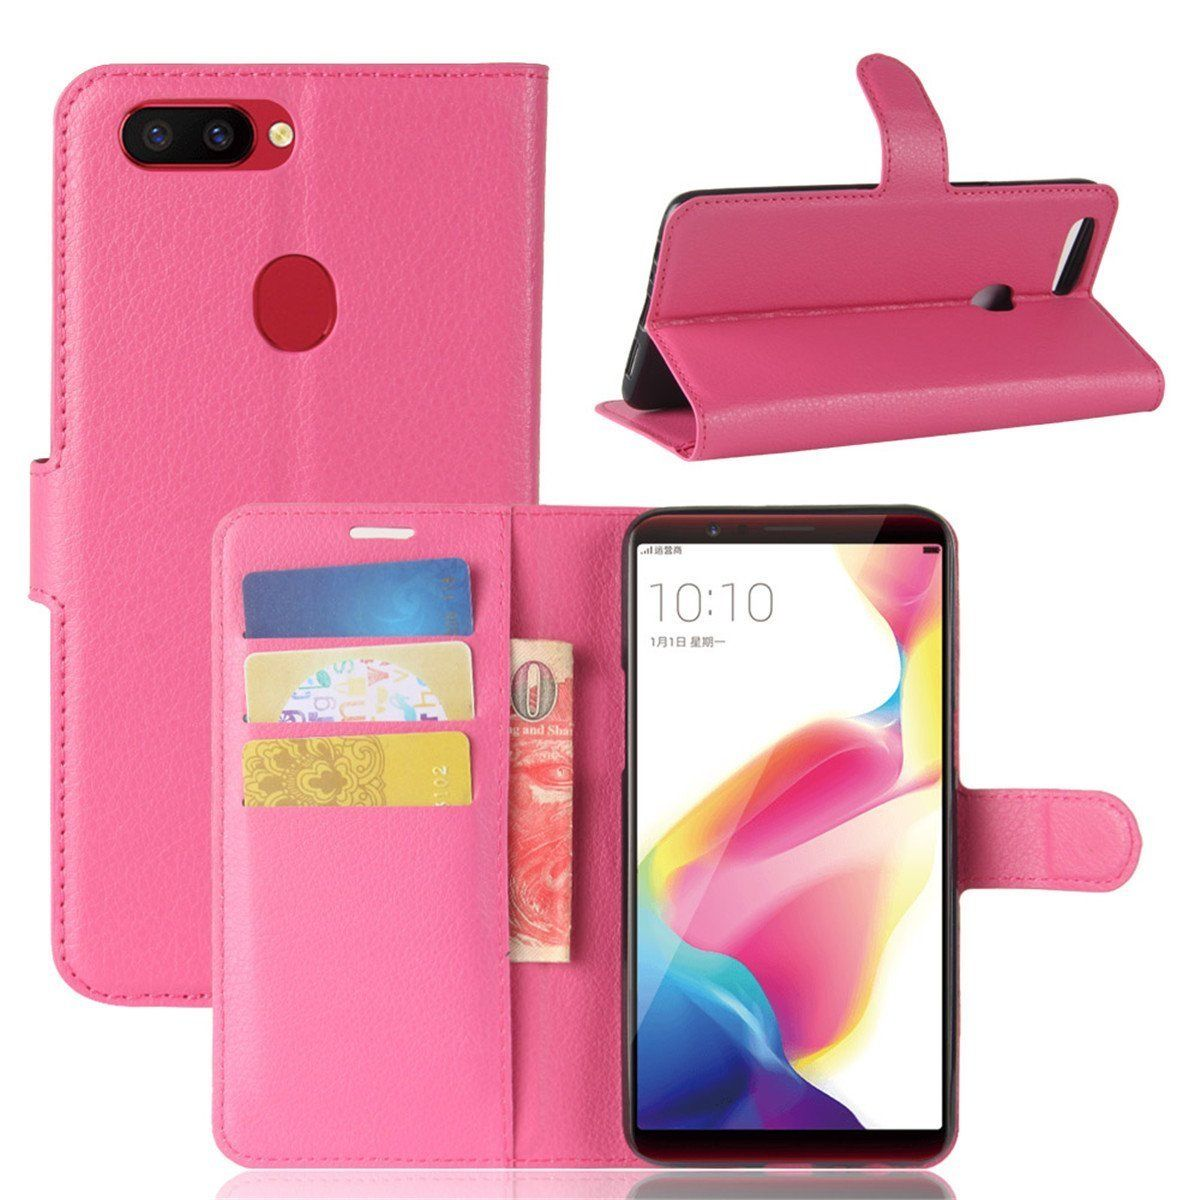 R15 Pro Premium Leather Wallet Case Cover For Oppo Case-Hot Pink